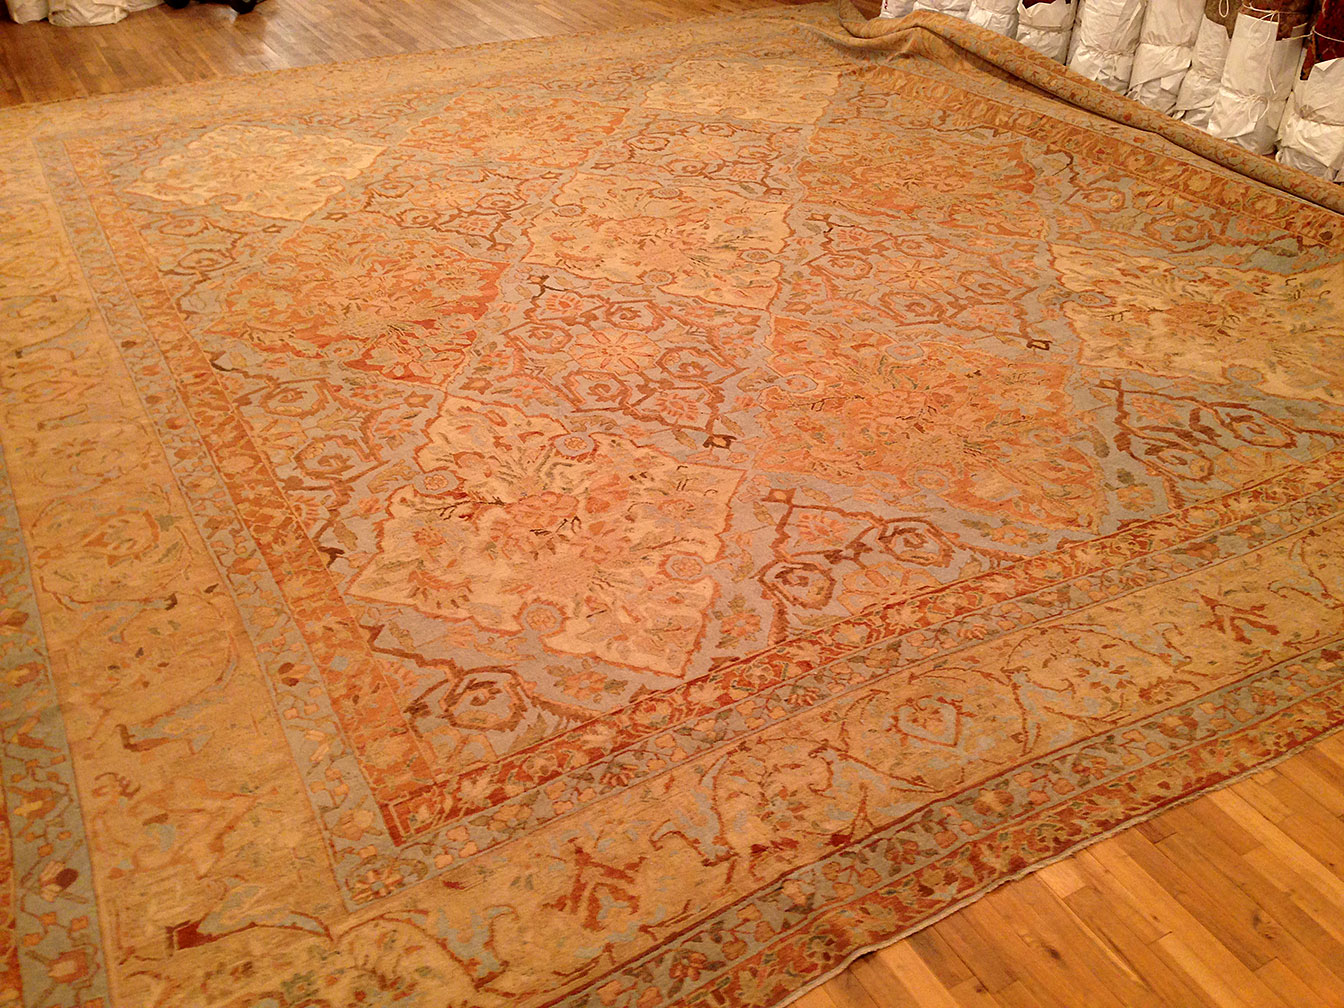 Antique northwest persia Carpet - # 50329